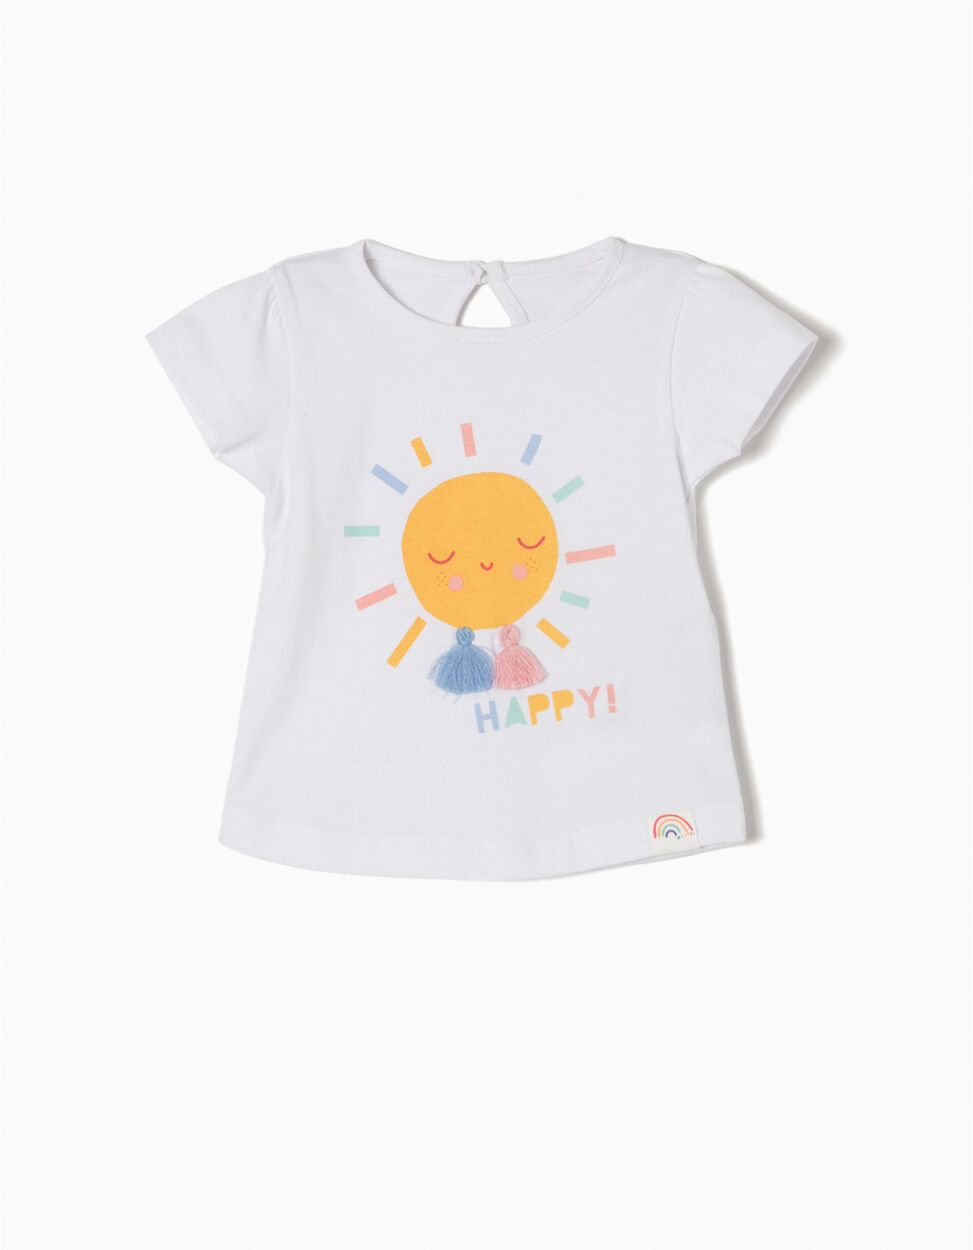 T-shirt Manga Curta Happy